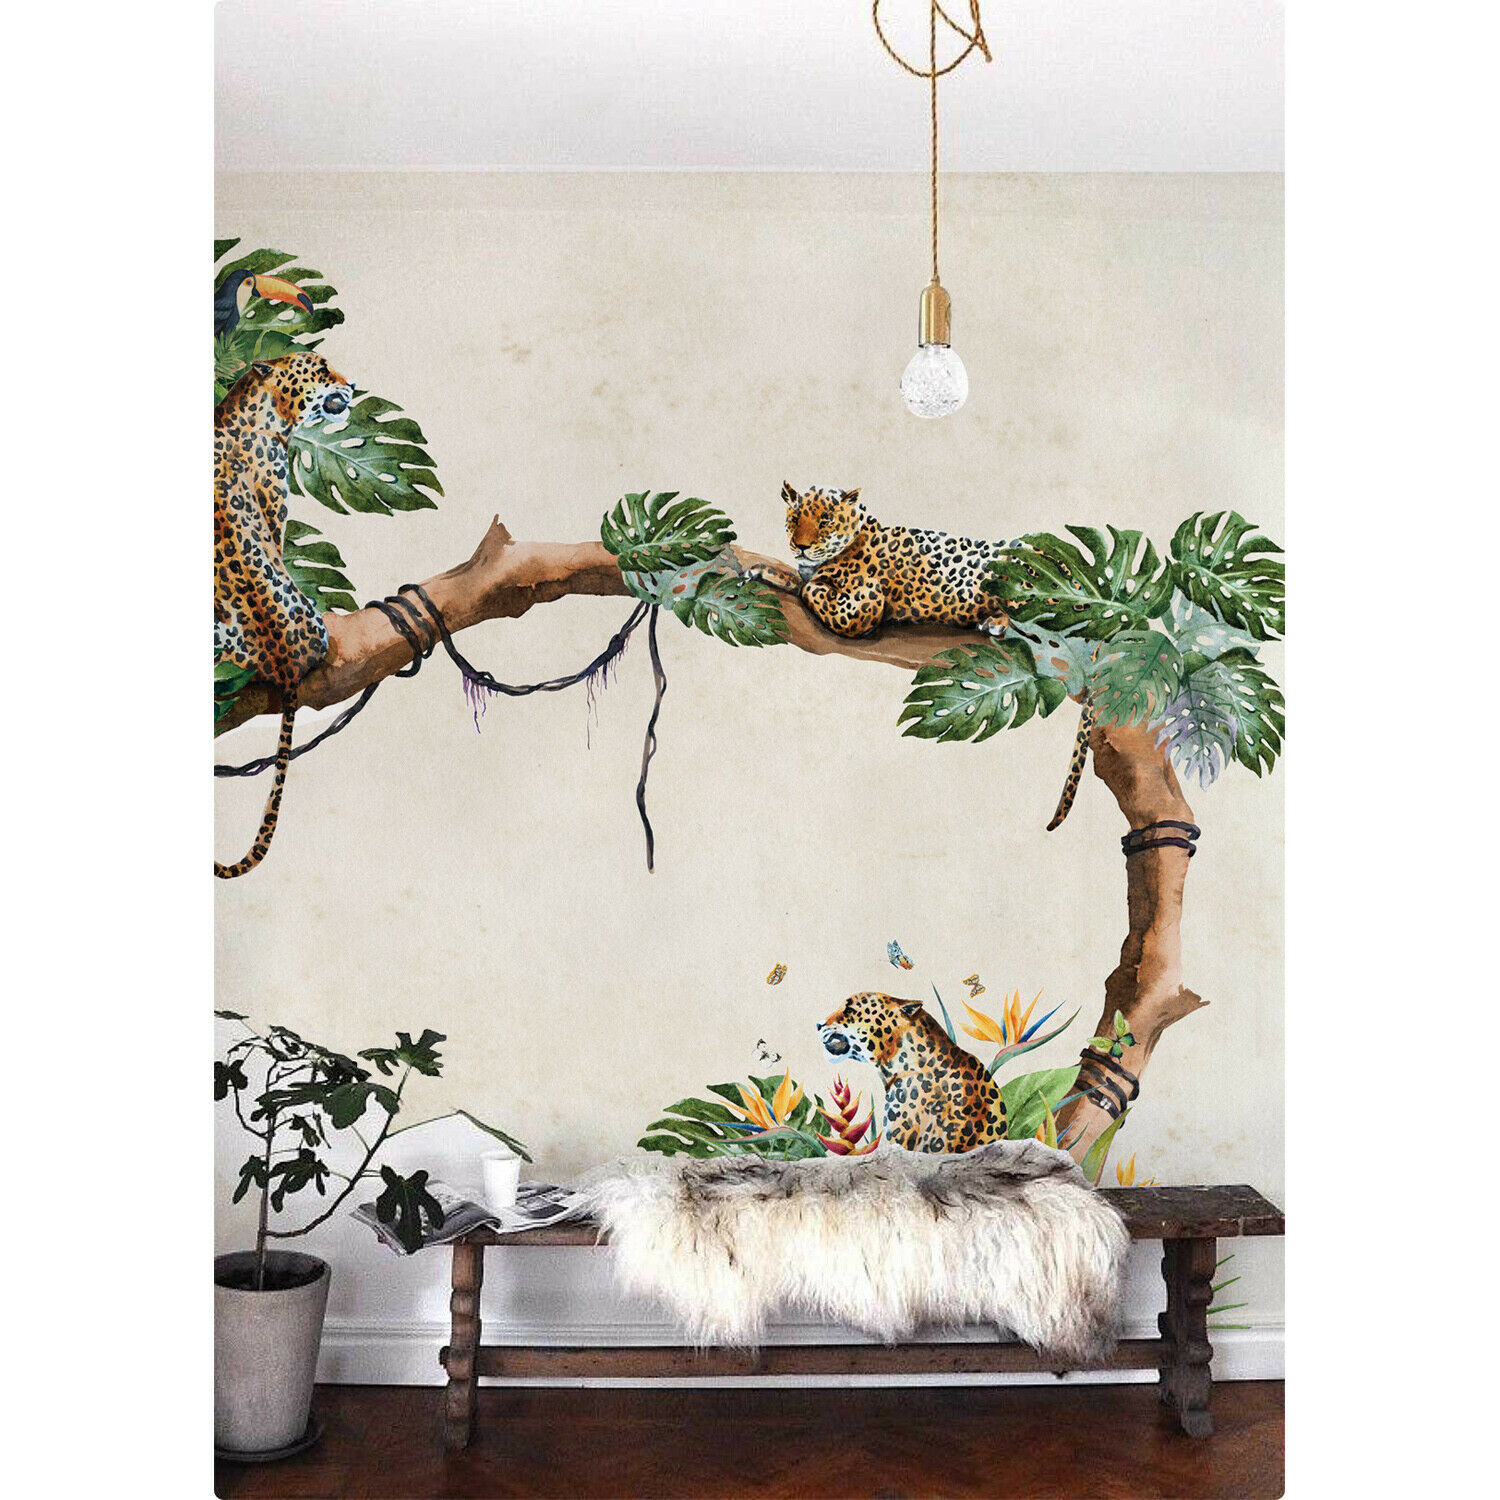 Wallpaper Tropical Cheetahs Mural Watercolor Wall Mural